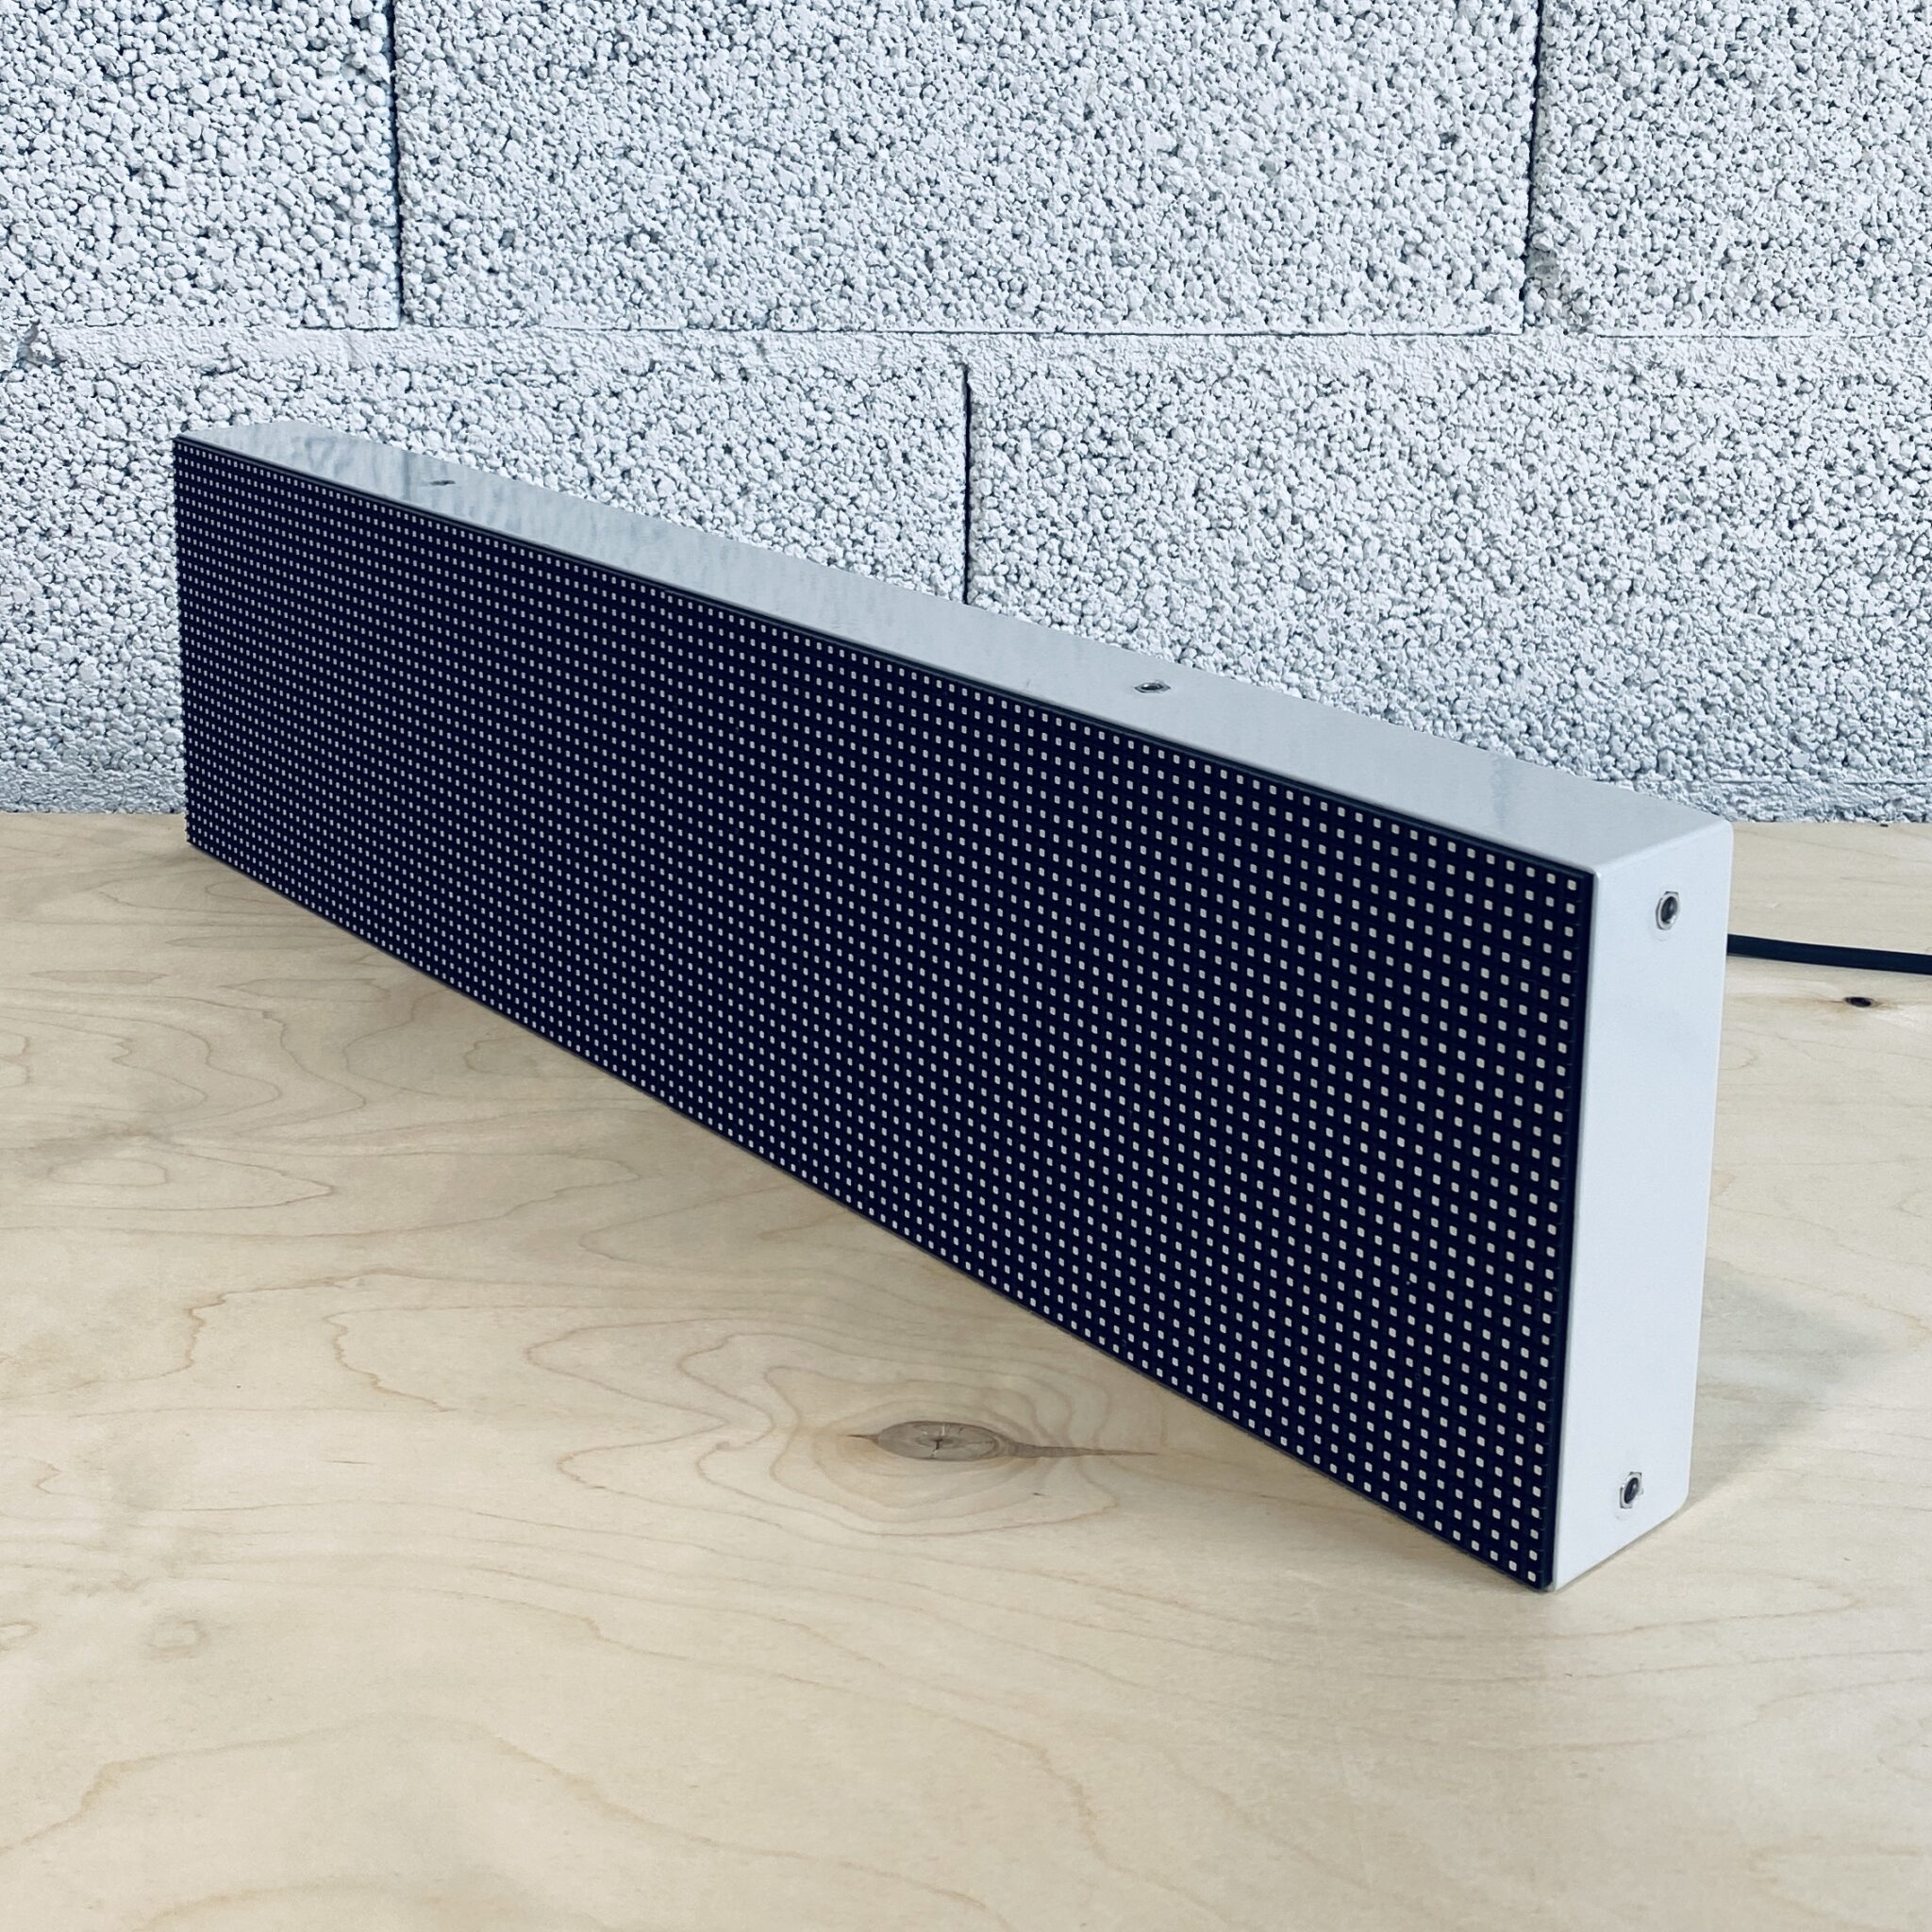 Parking LED Message Board Compact Model DS-640x160